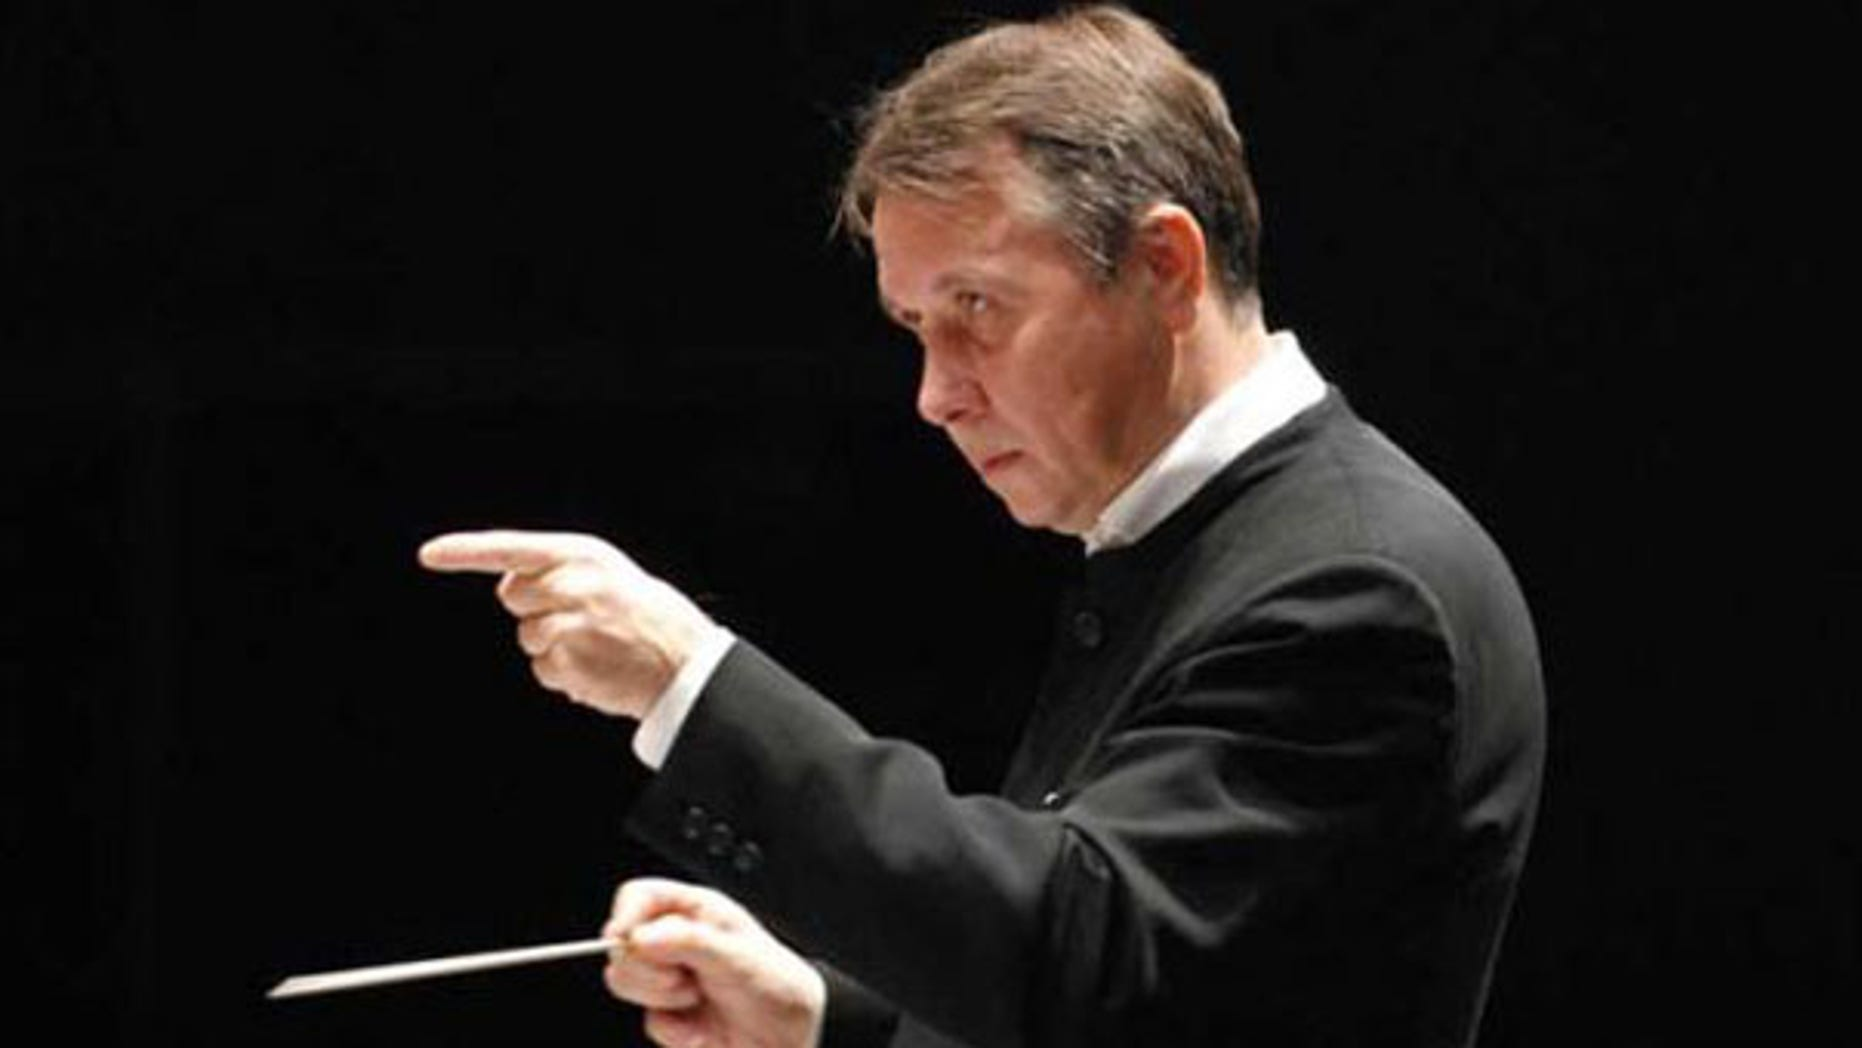 Grammy-winning pianist and conductor Mikhail Pletnev